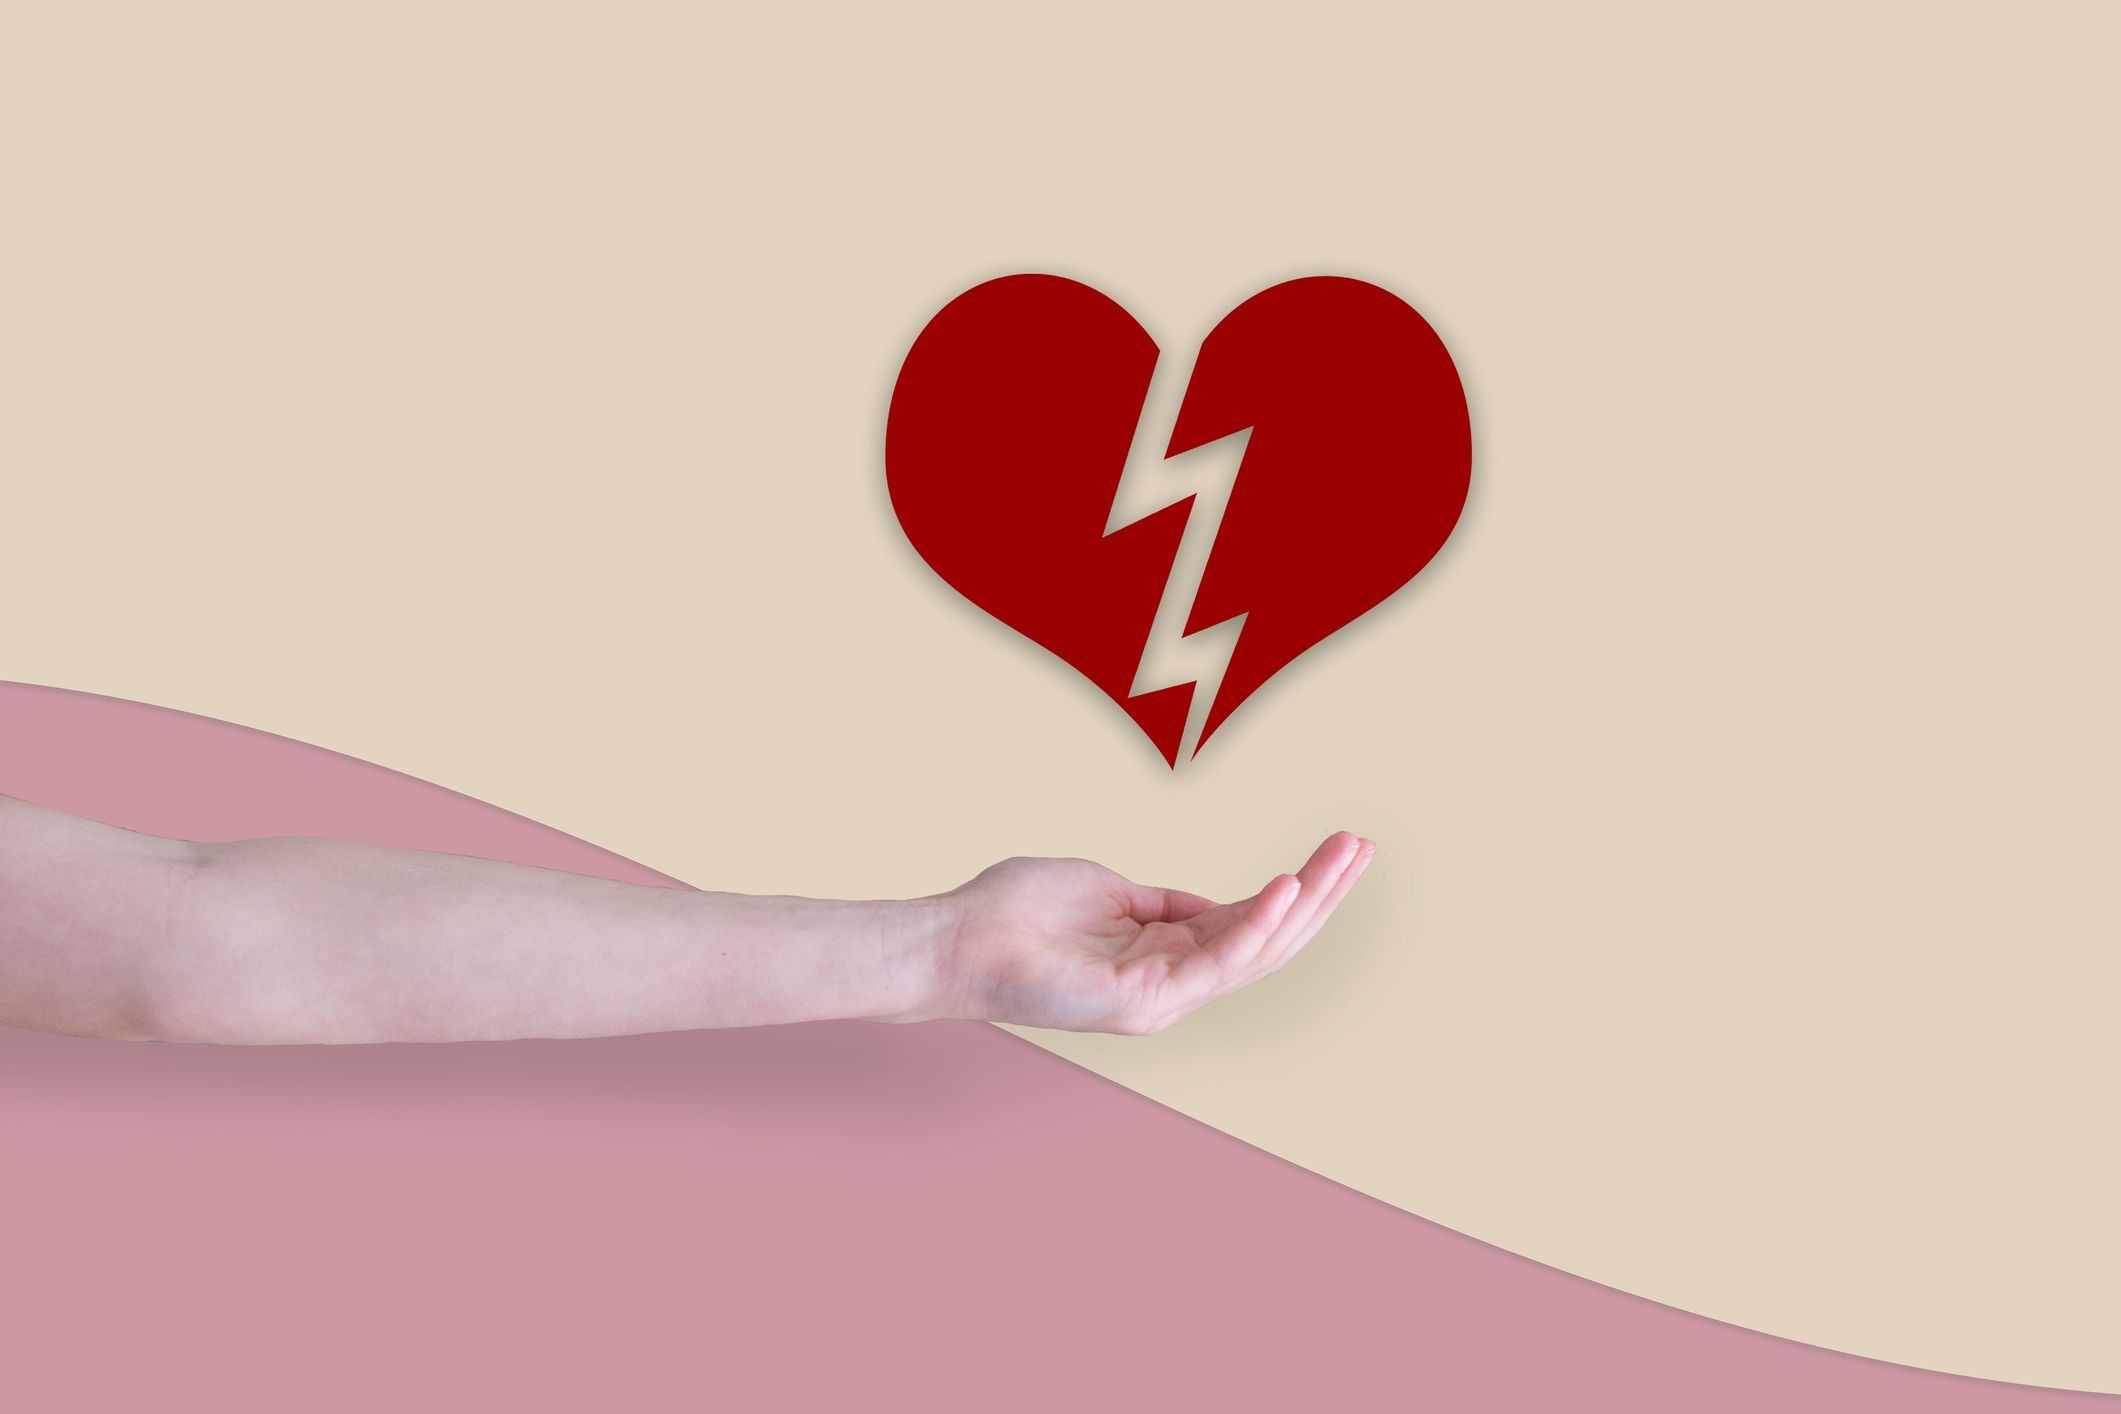 Heartbreak 6 Stages Of Recovery From A Broken Heart